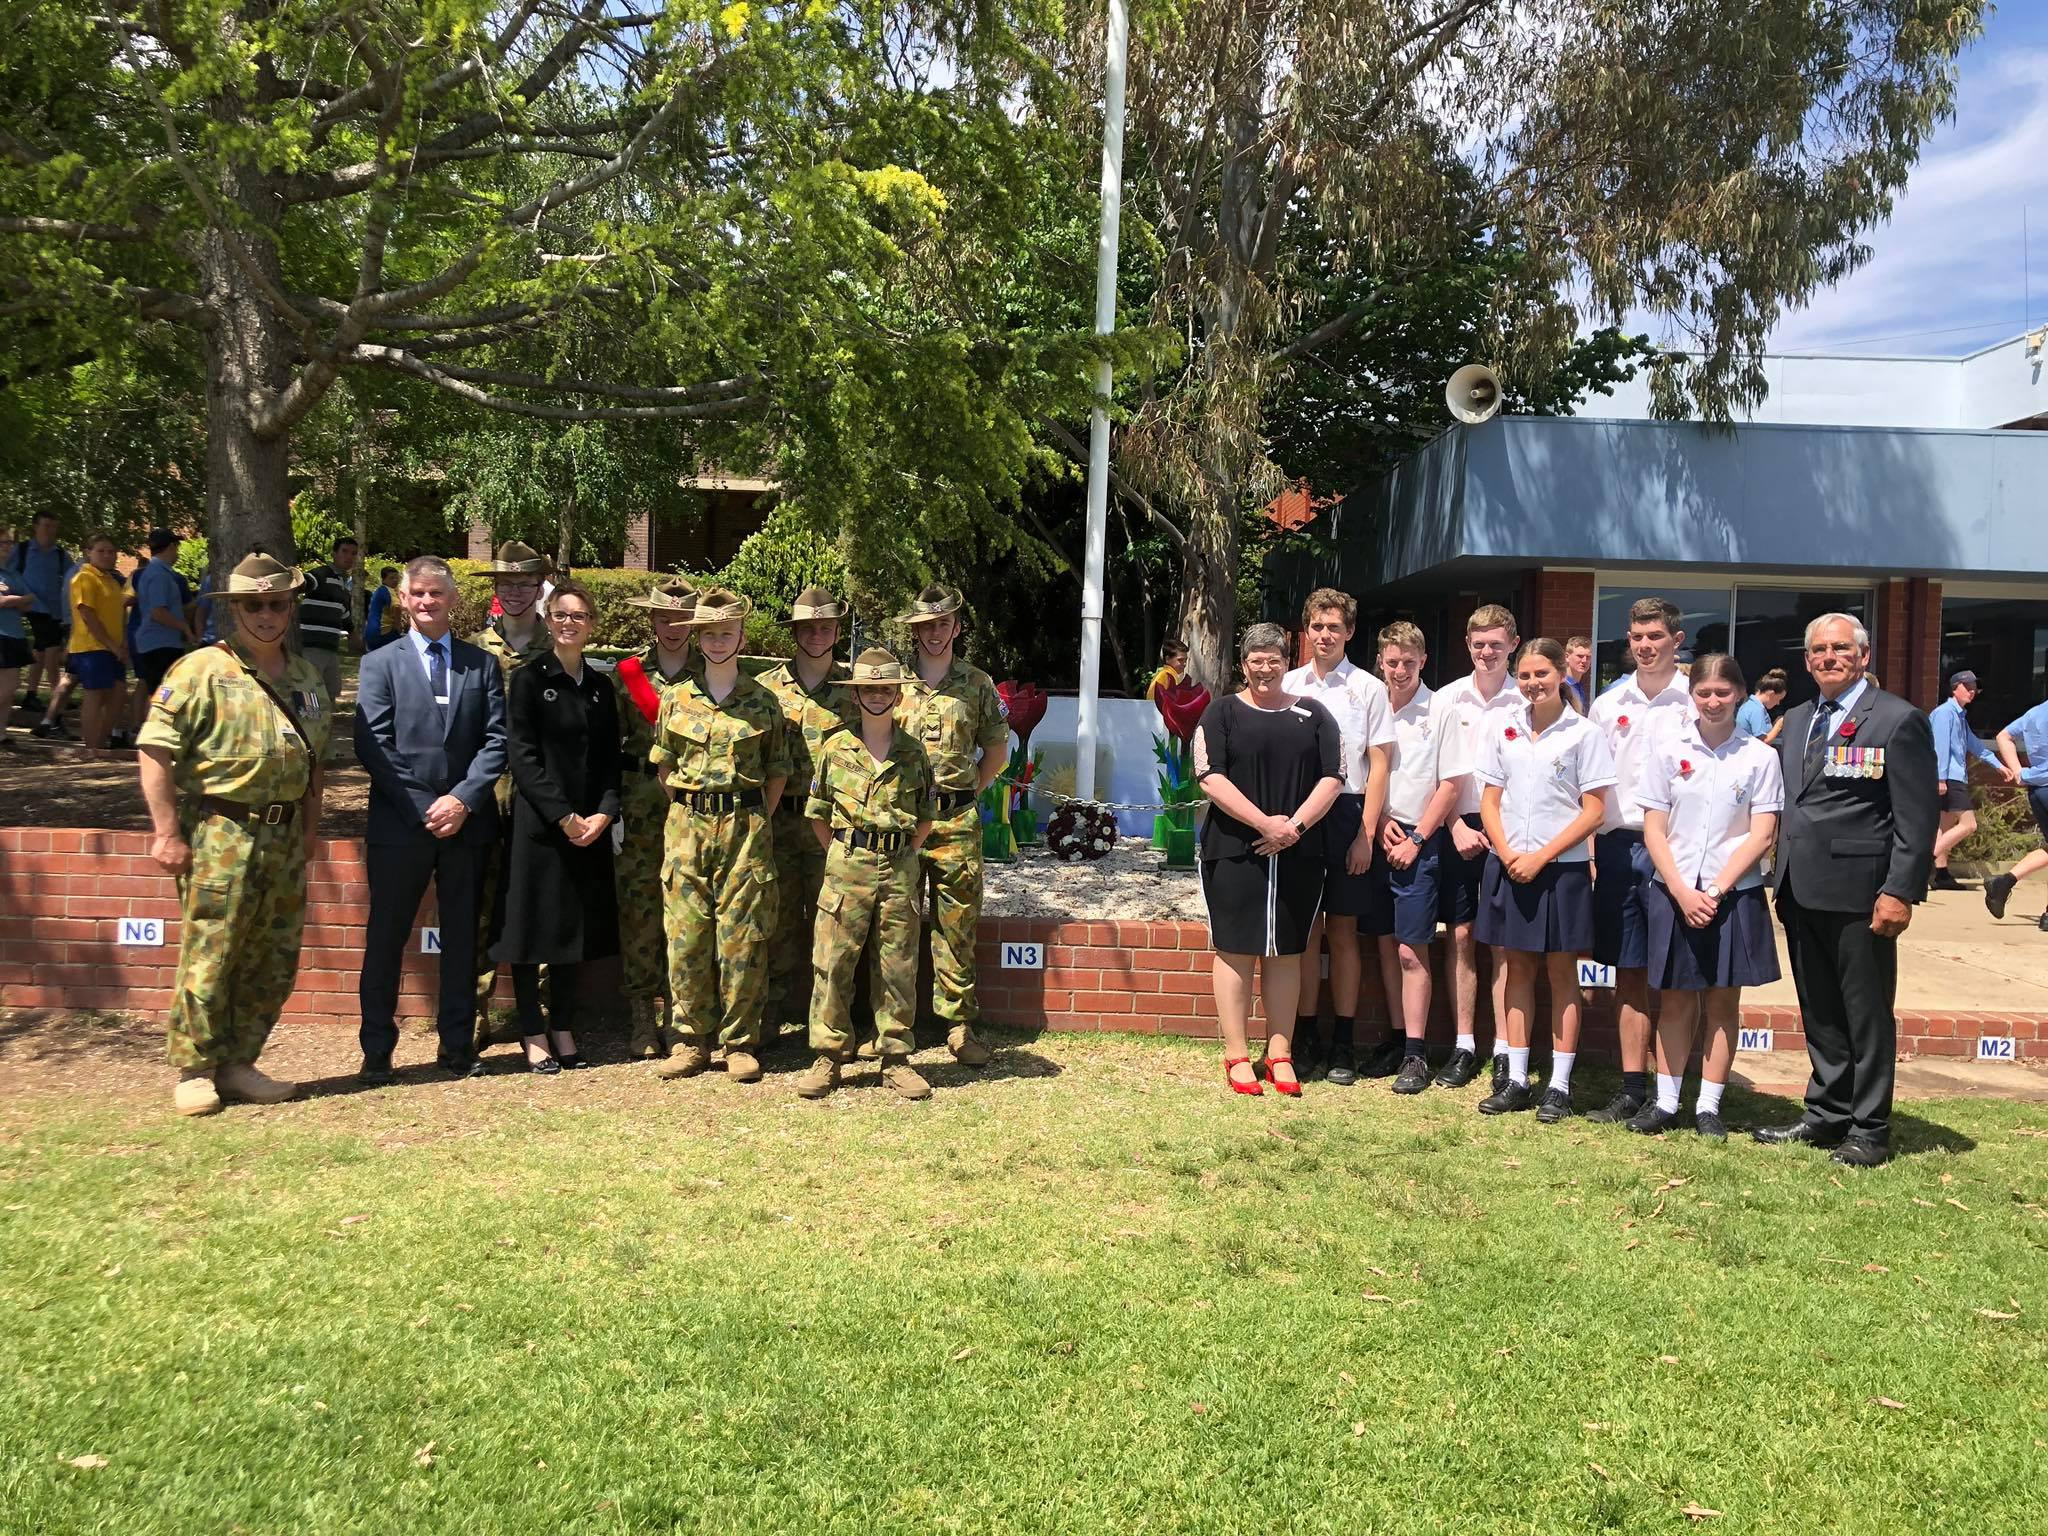 A group of high school students in uniform and in cadet army uniforms stand with Steph Cooke and teachers around a flag pole. All wear red poppies on their shirts.